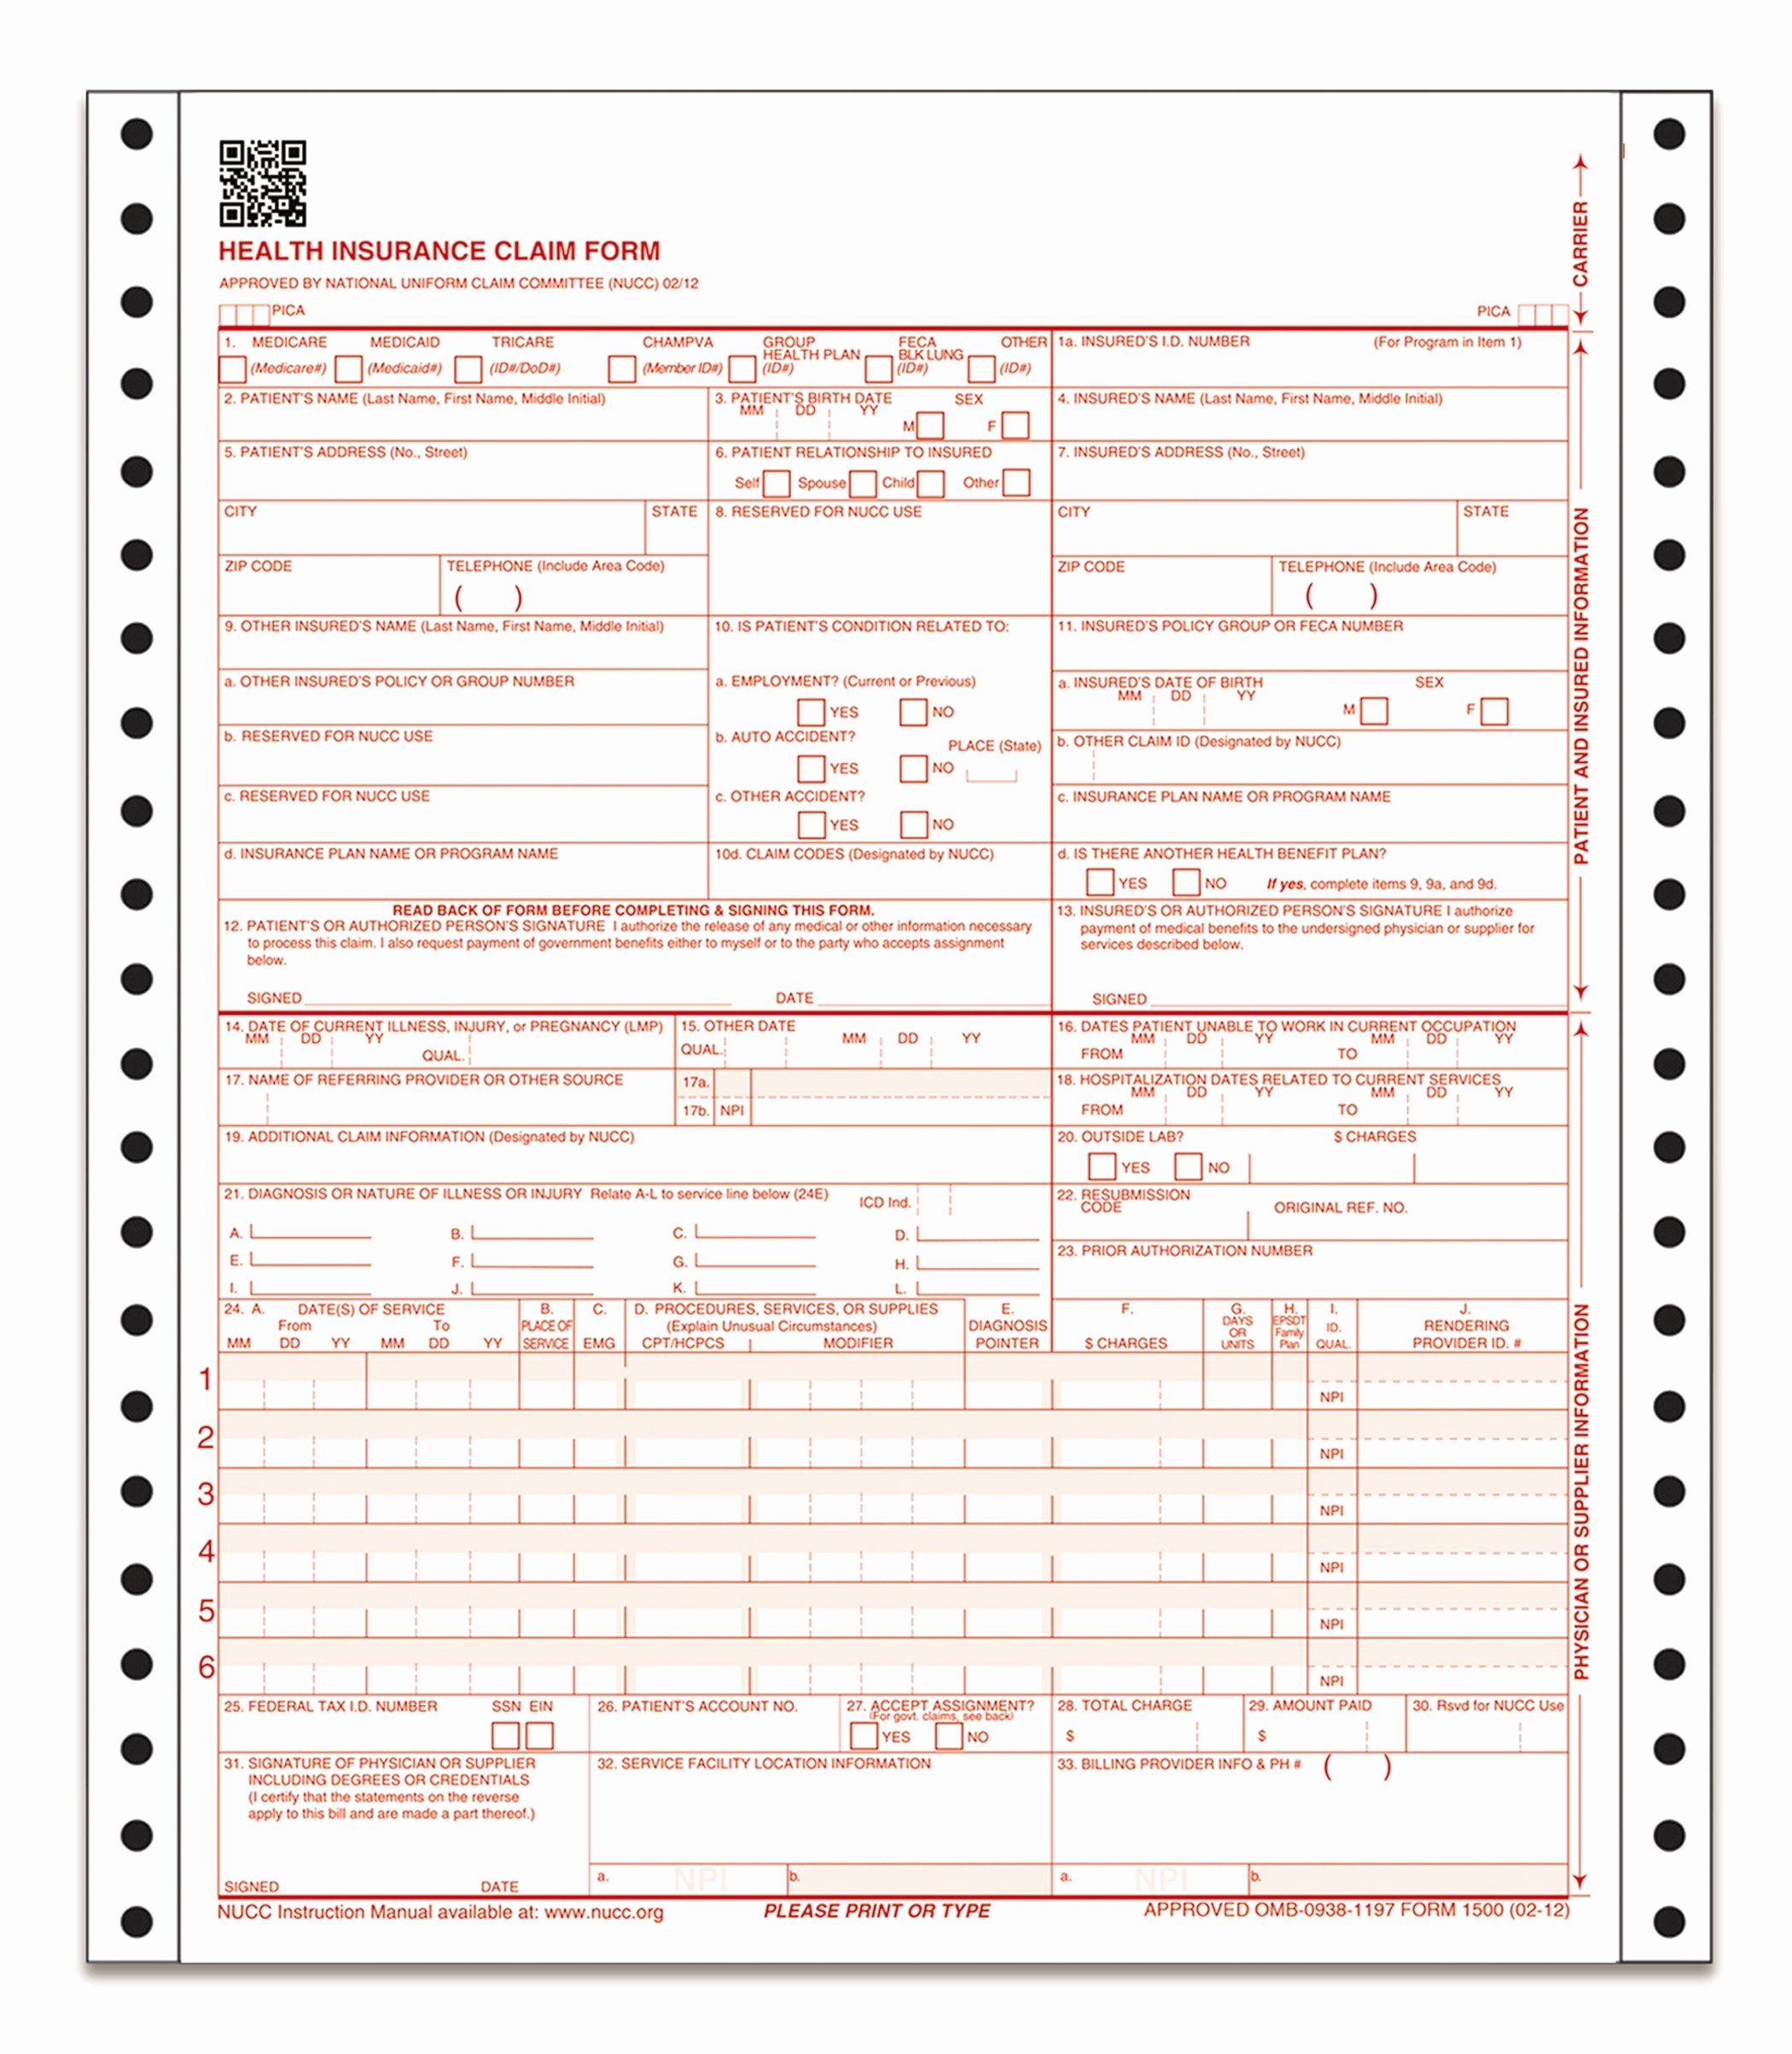 Www Pratcpasettlement Com Claim form Inspirational Health Insurance Claim form 2 Part Continuous 100 Sets